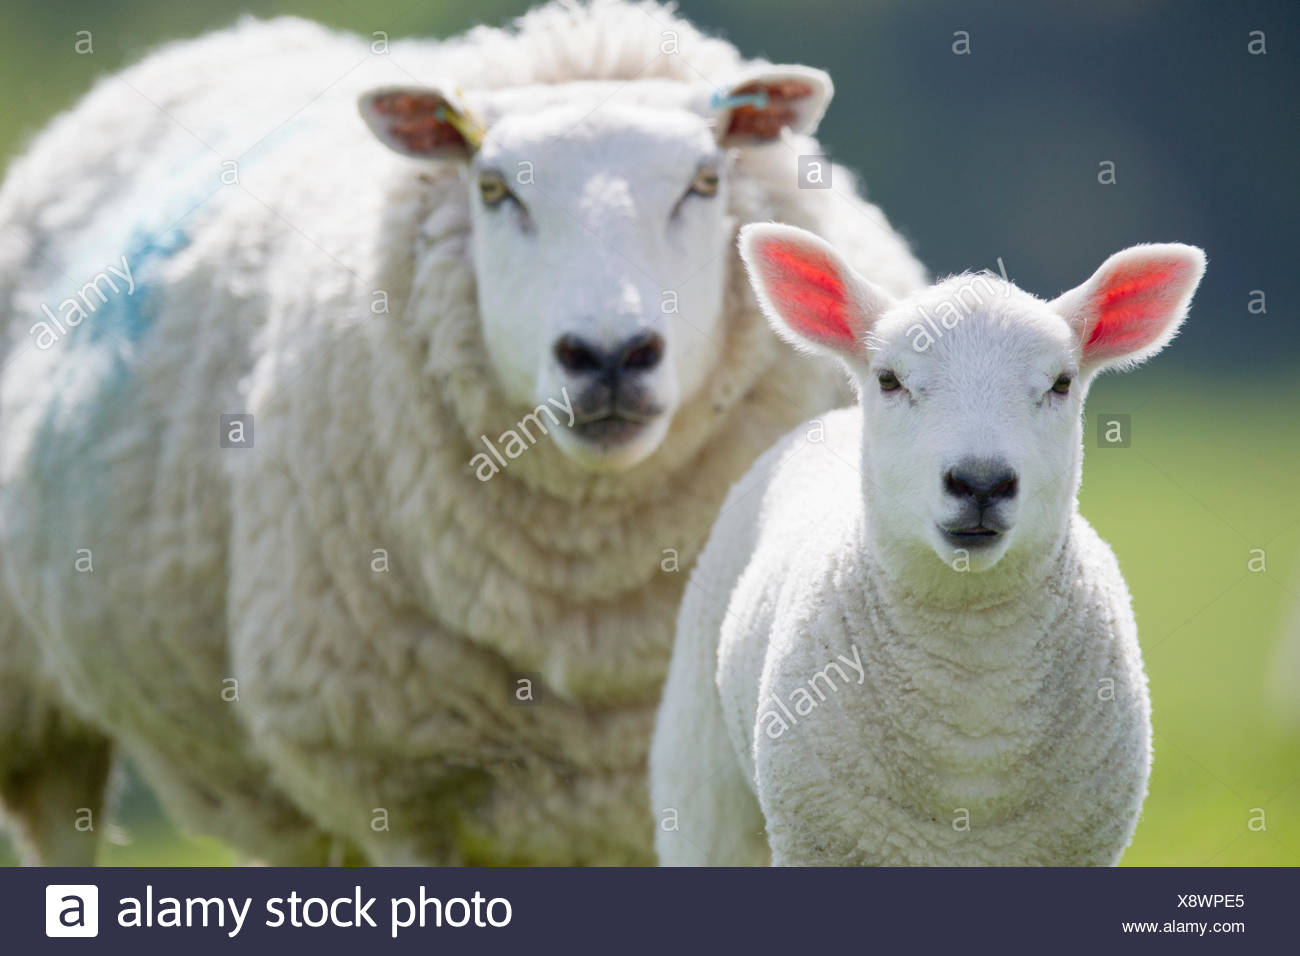 Portrait de mouton et agneau, focus on foreground Photo Stock